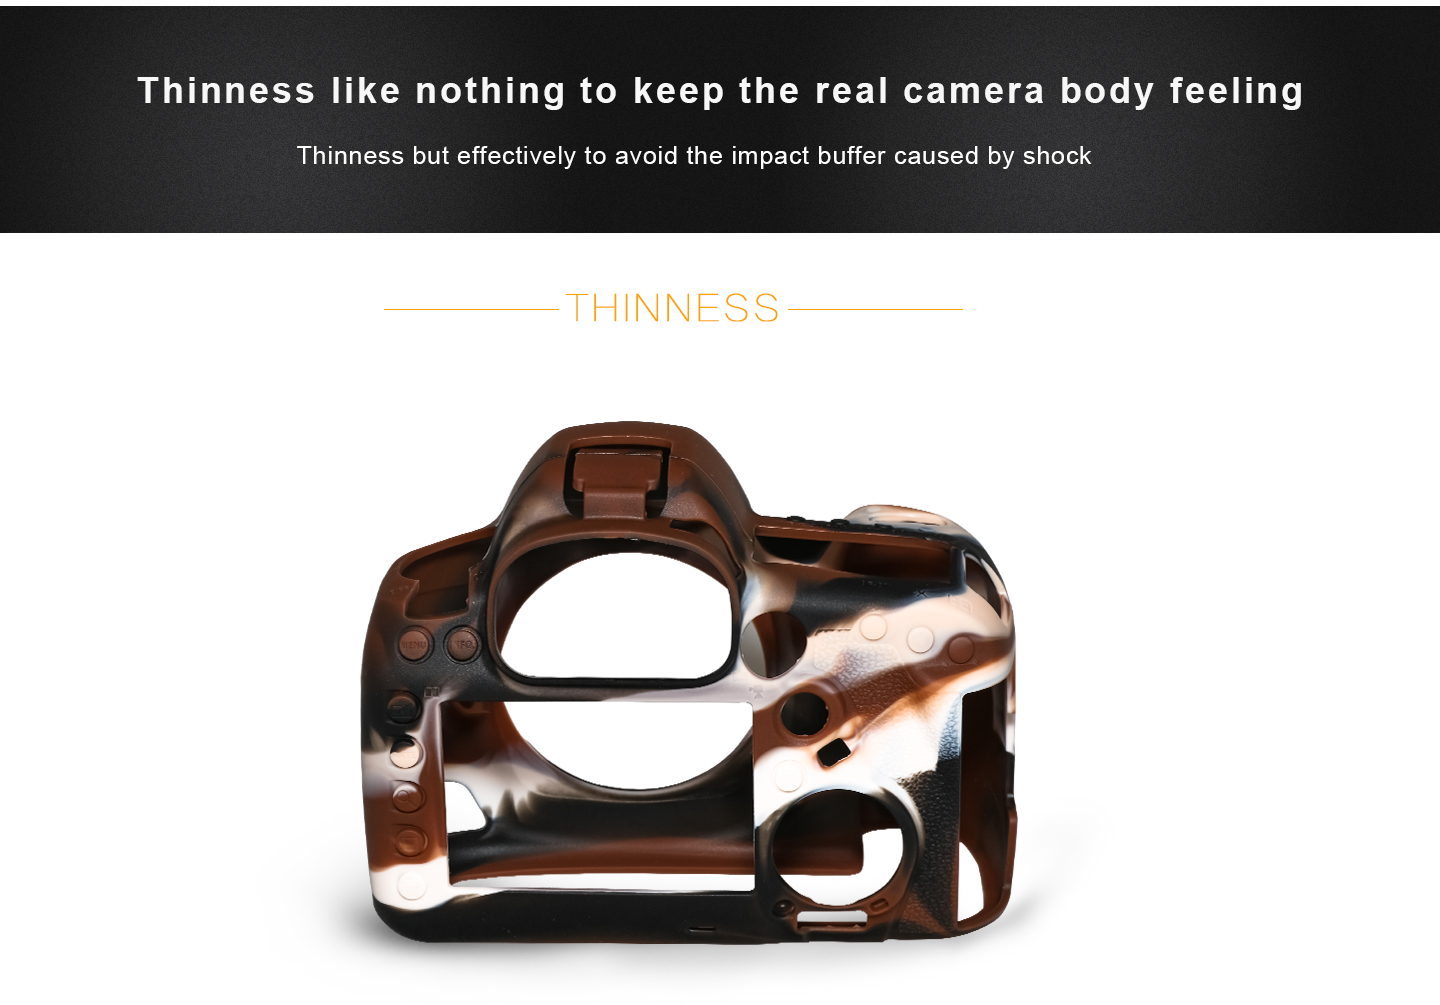 Thinness like nothing to keep the real camera body feeling